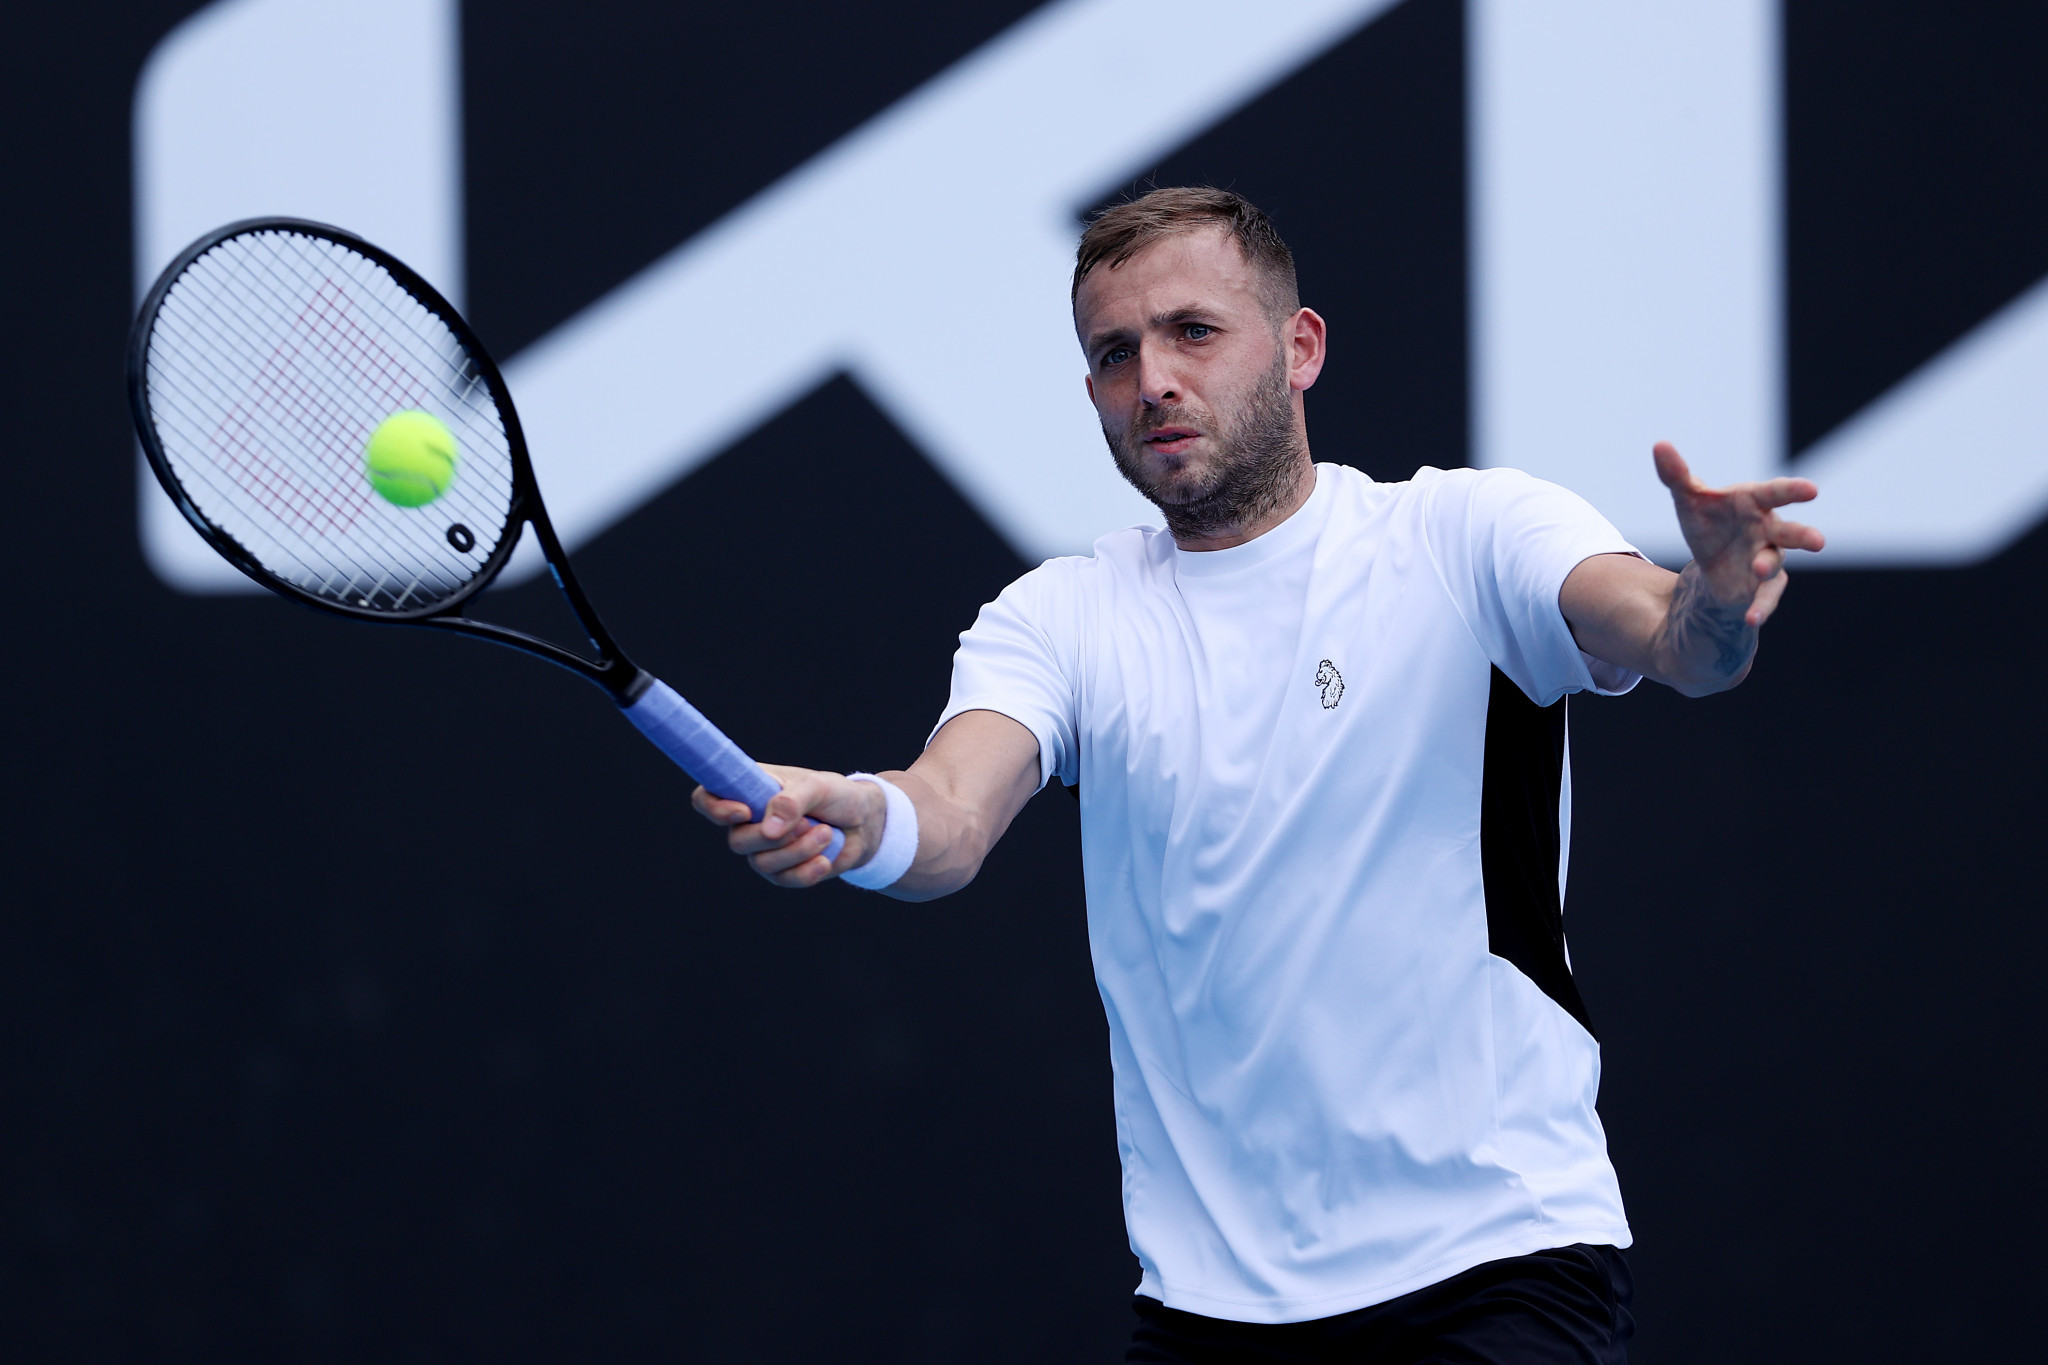 Dan Evans believes COVID-19 restrictions at the National Tennis Centre had